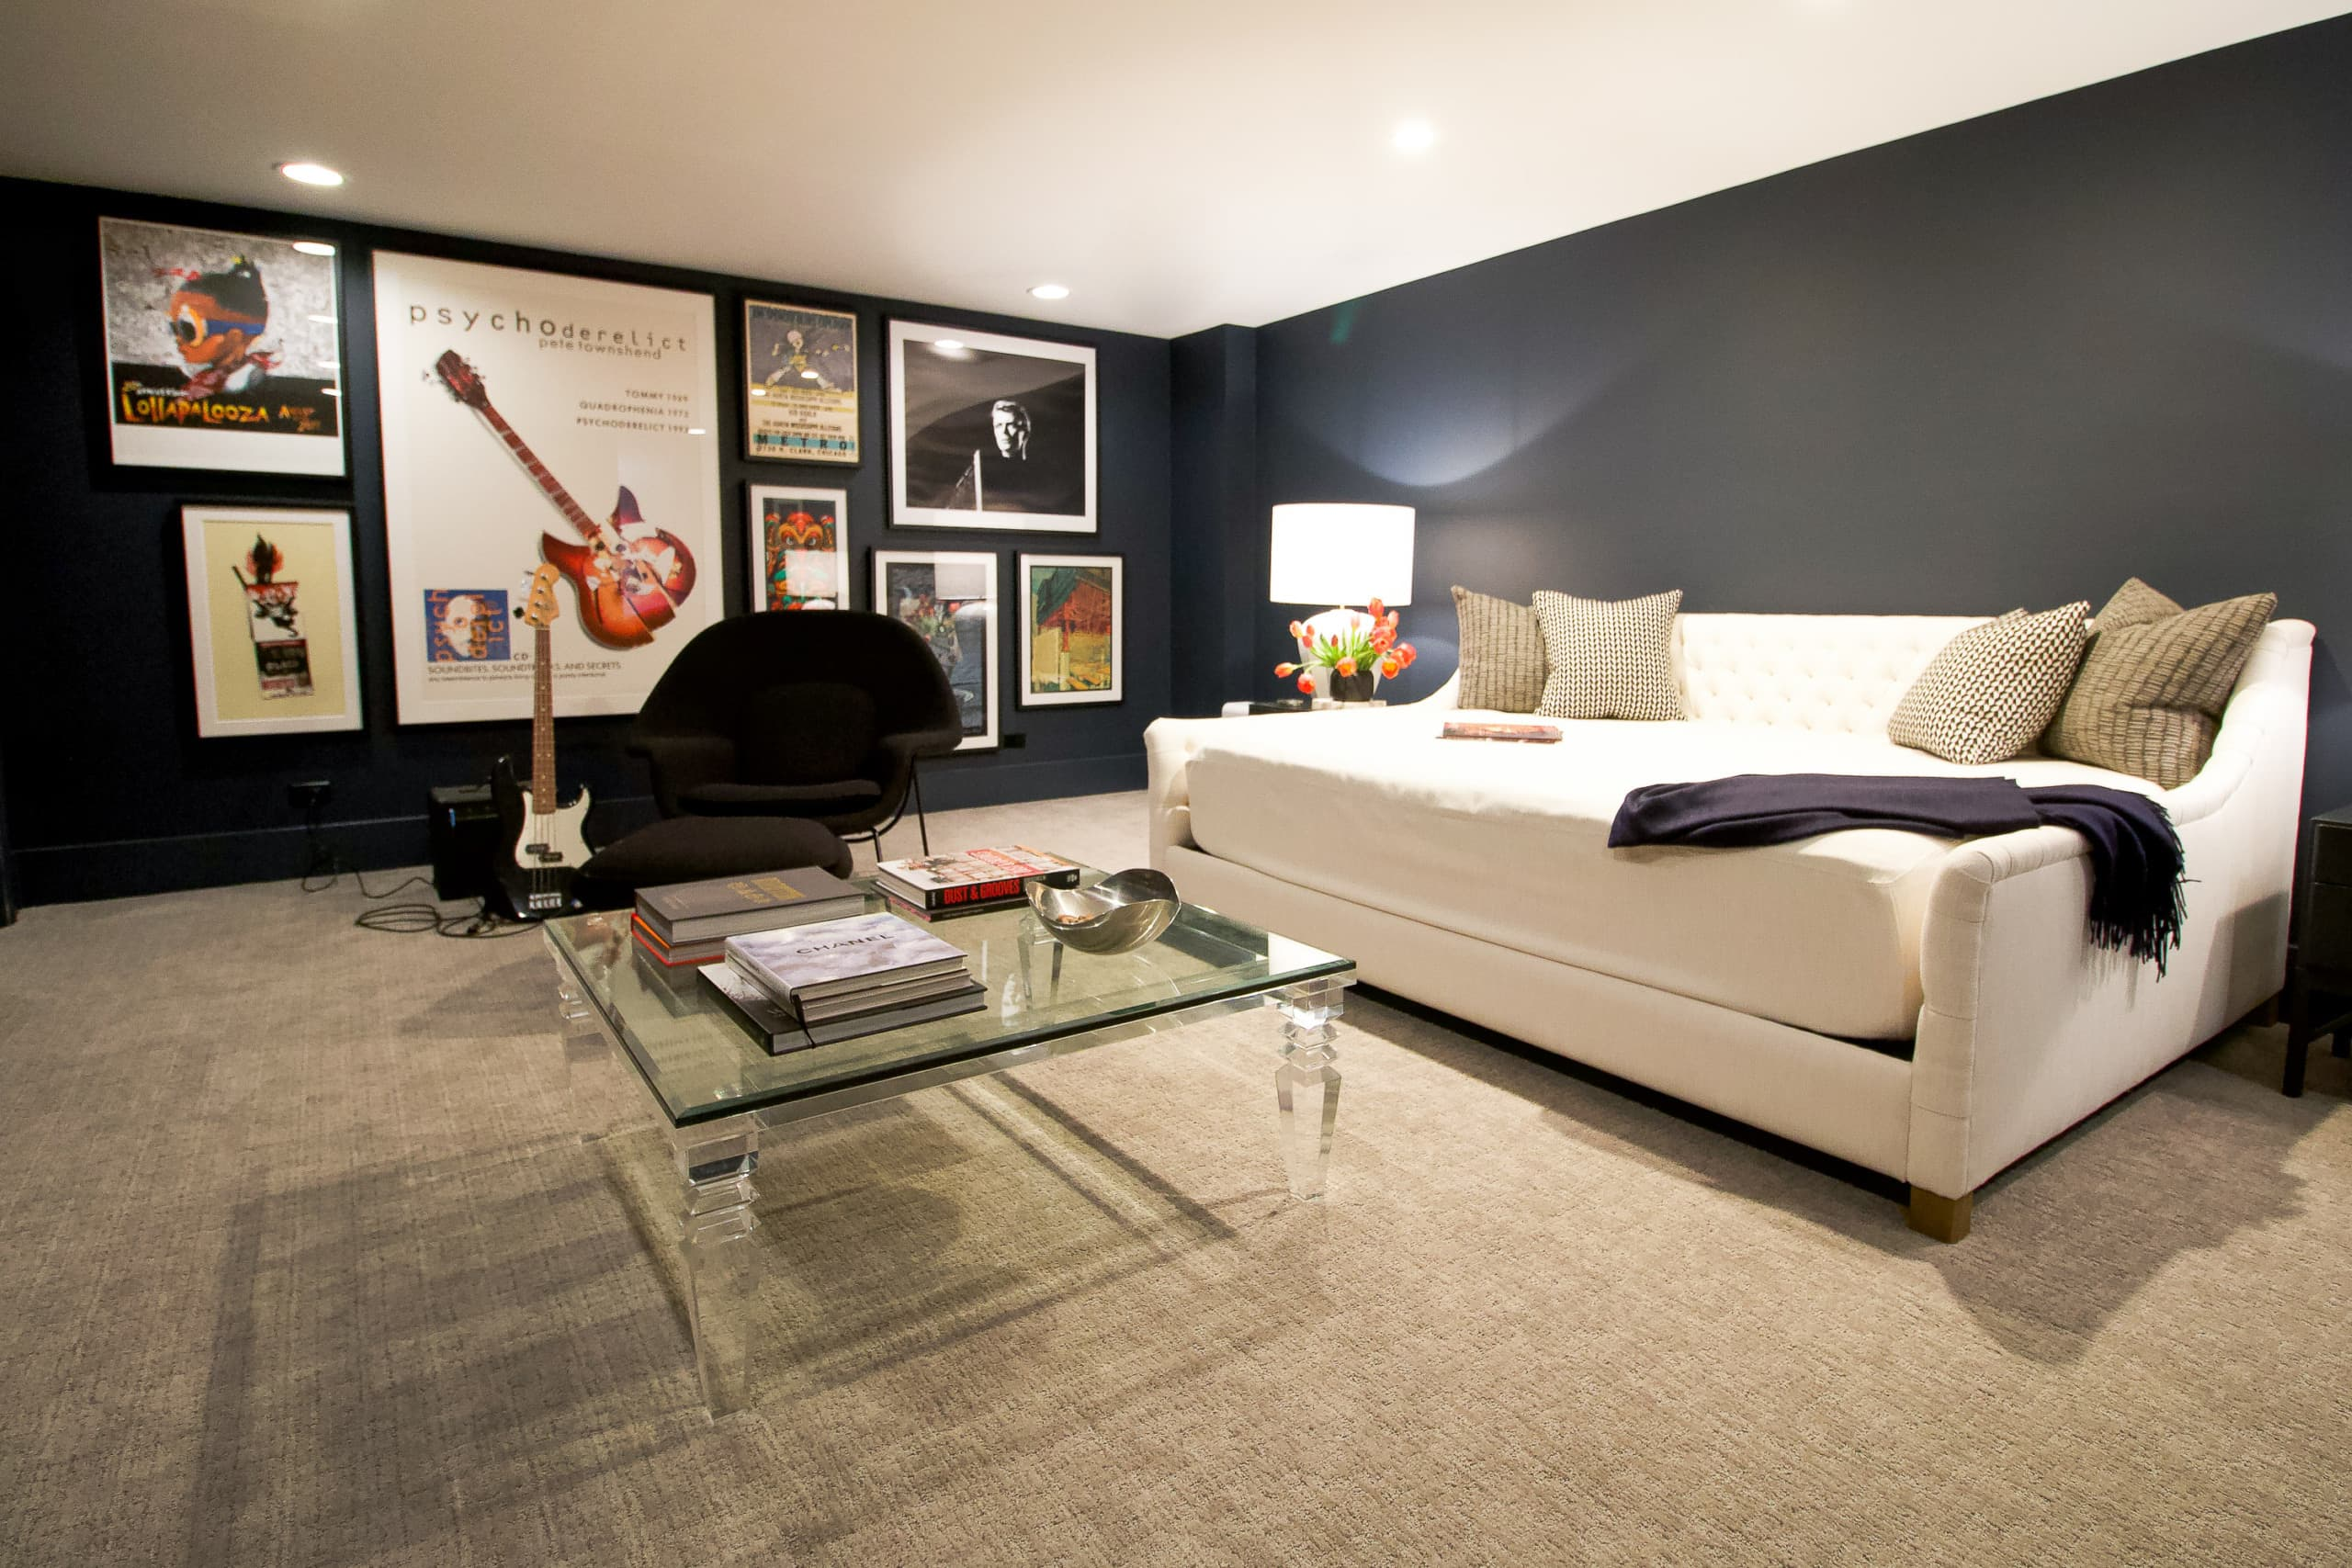 Music room in the basement